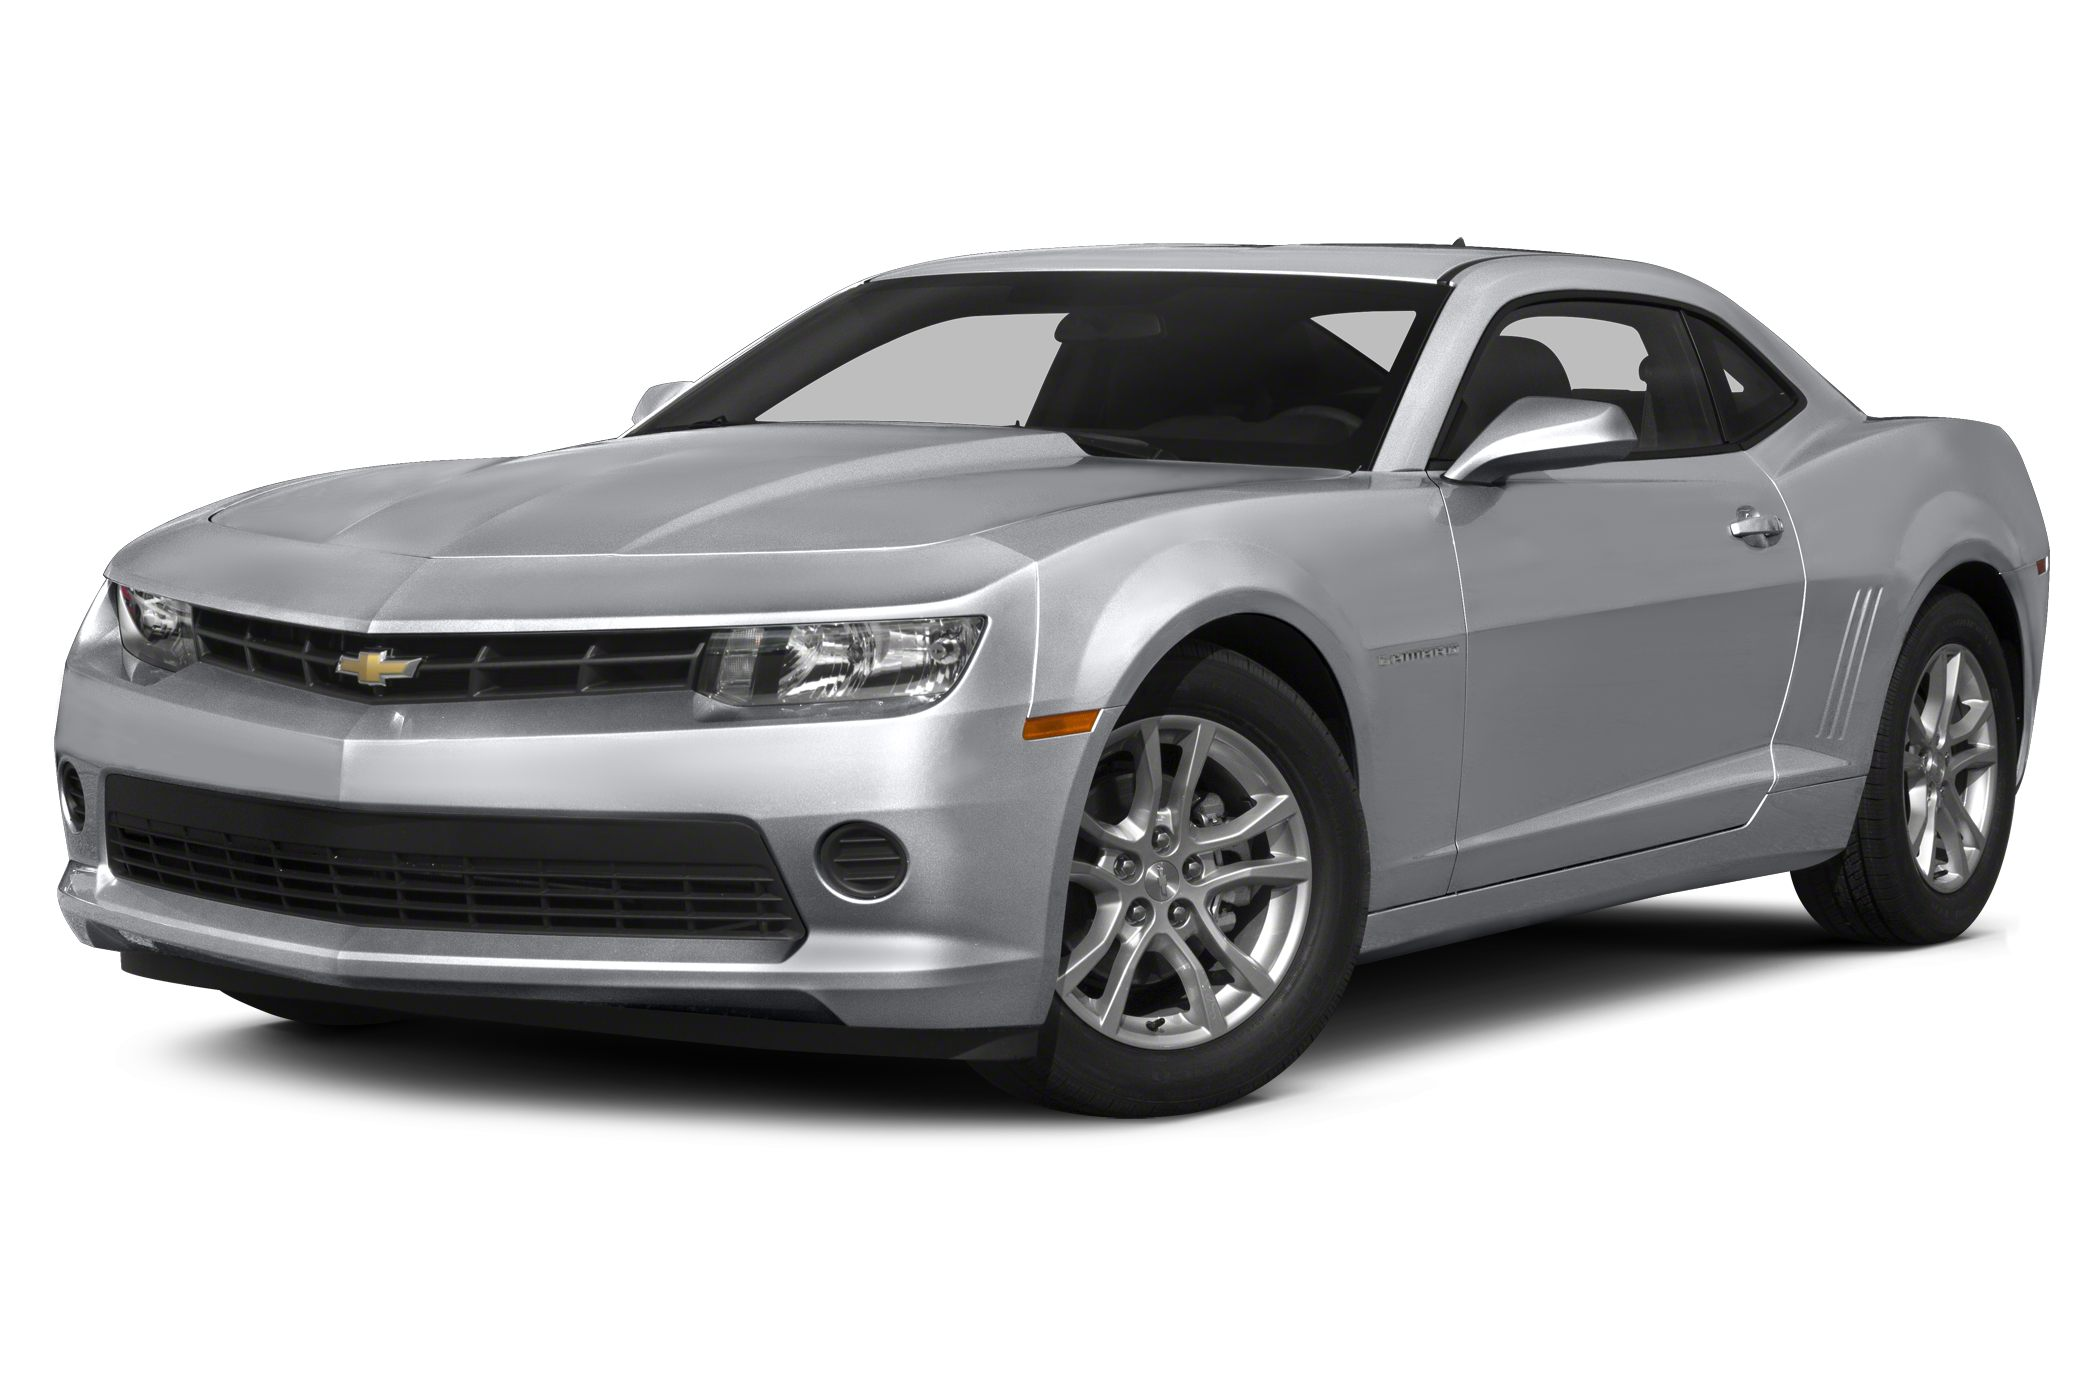 2015 Chevrolet Camaro 2LS Coupe for sale in Fayetteville for $26,643 with 6 miles.